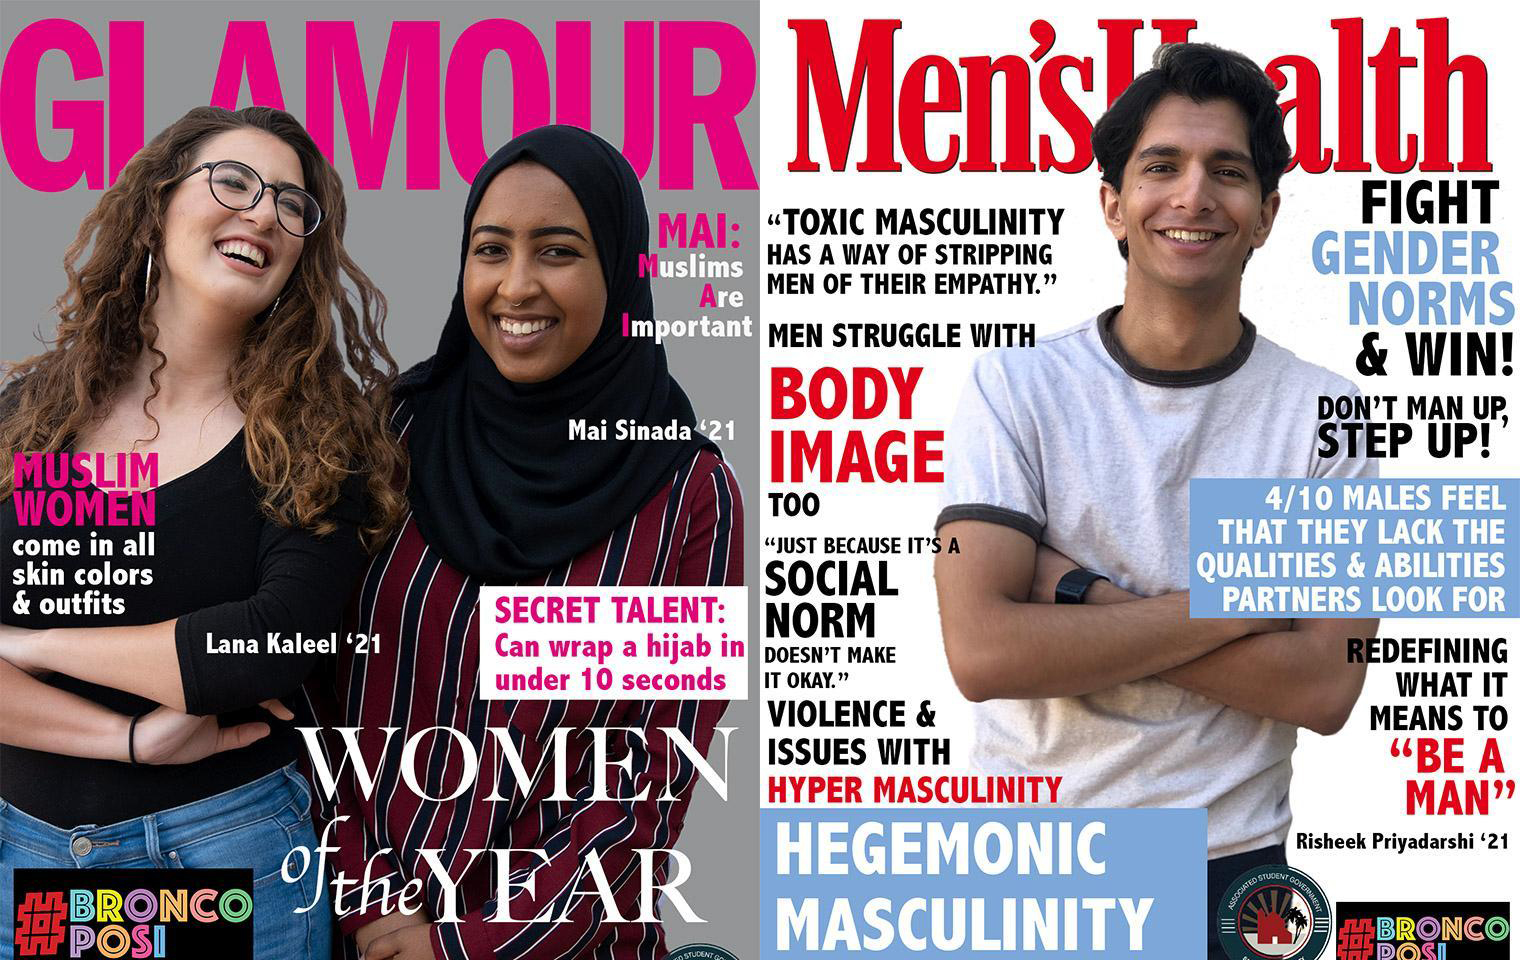 Three students photoshopped onto covers of Glamour and Men's Health image link to article